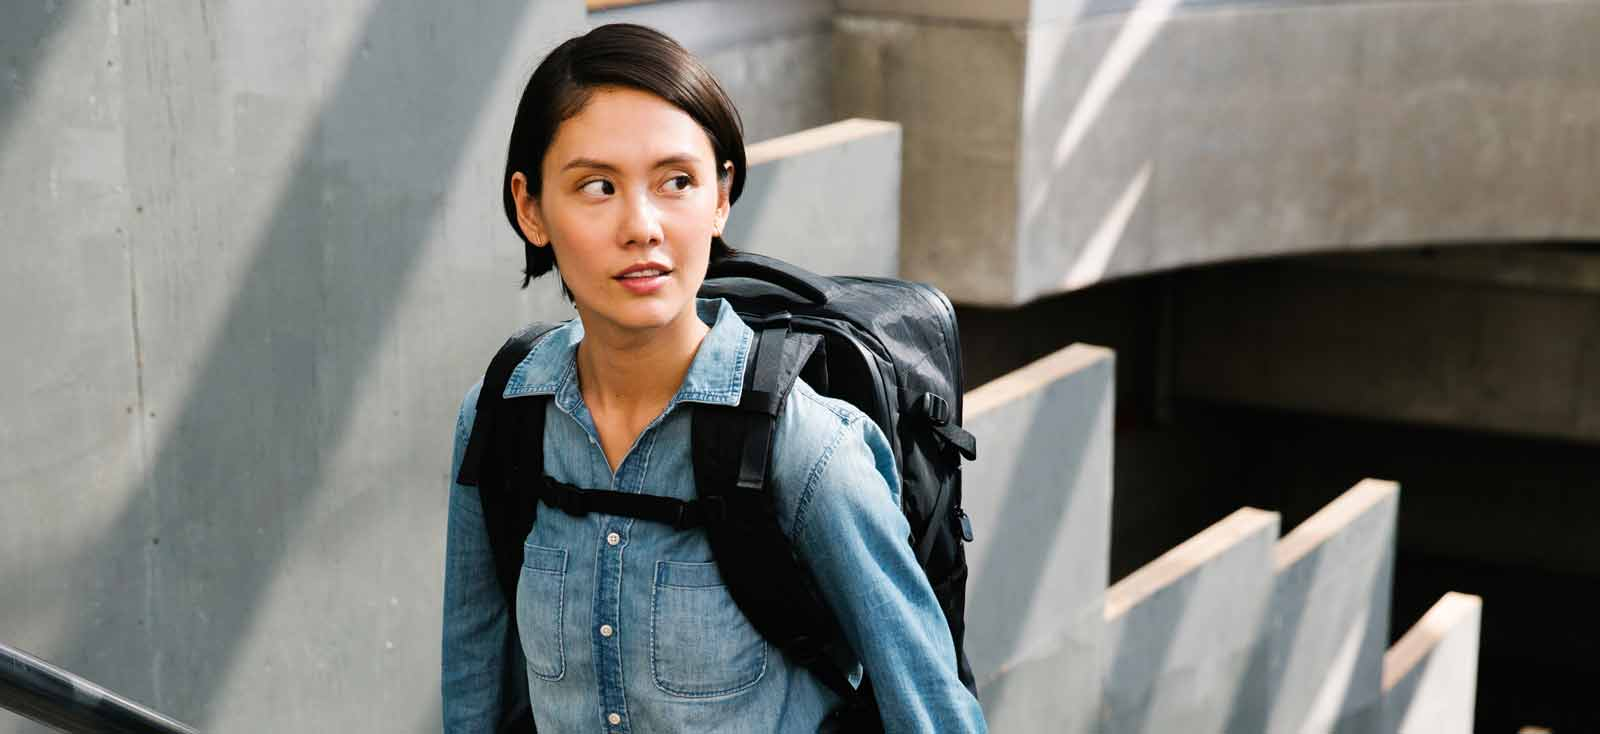 Woman Wearing Backpack in City